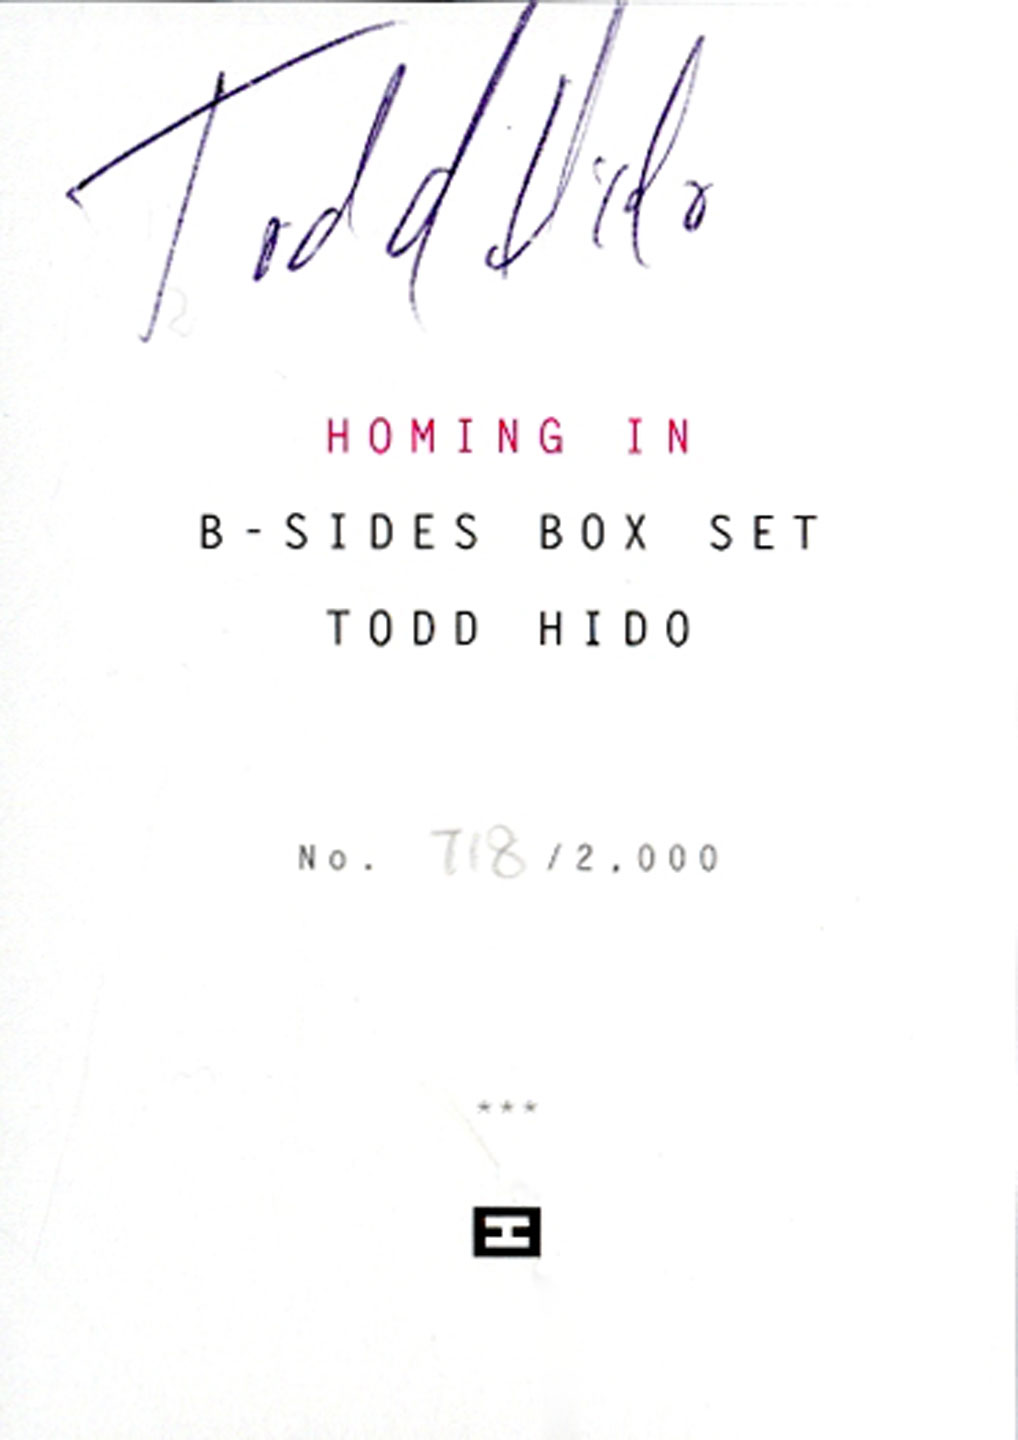 Todd Hido: Homing In -- B-Sides Box Set, Limited Edition [SIGNED]